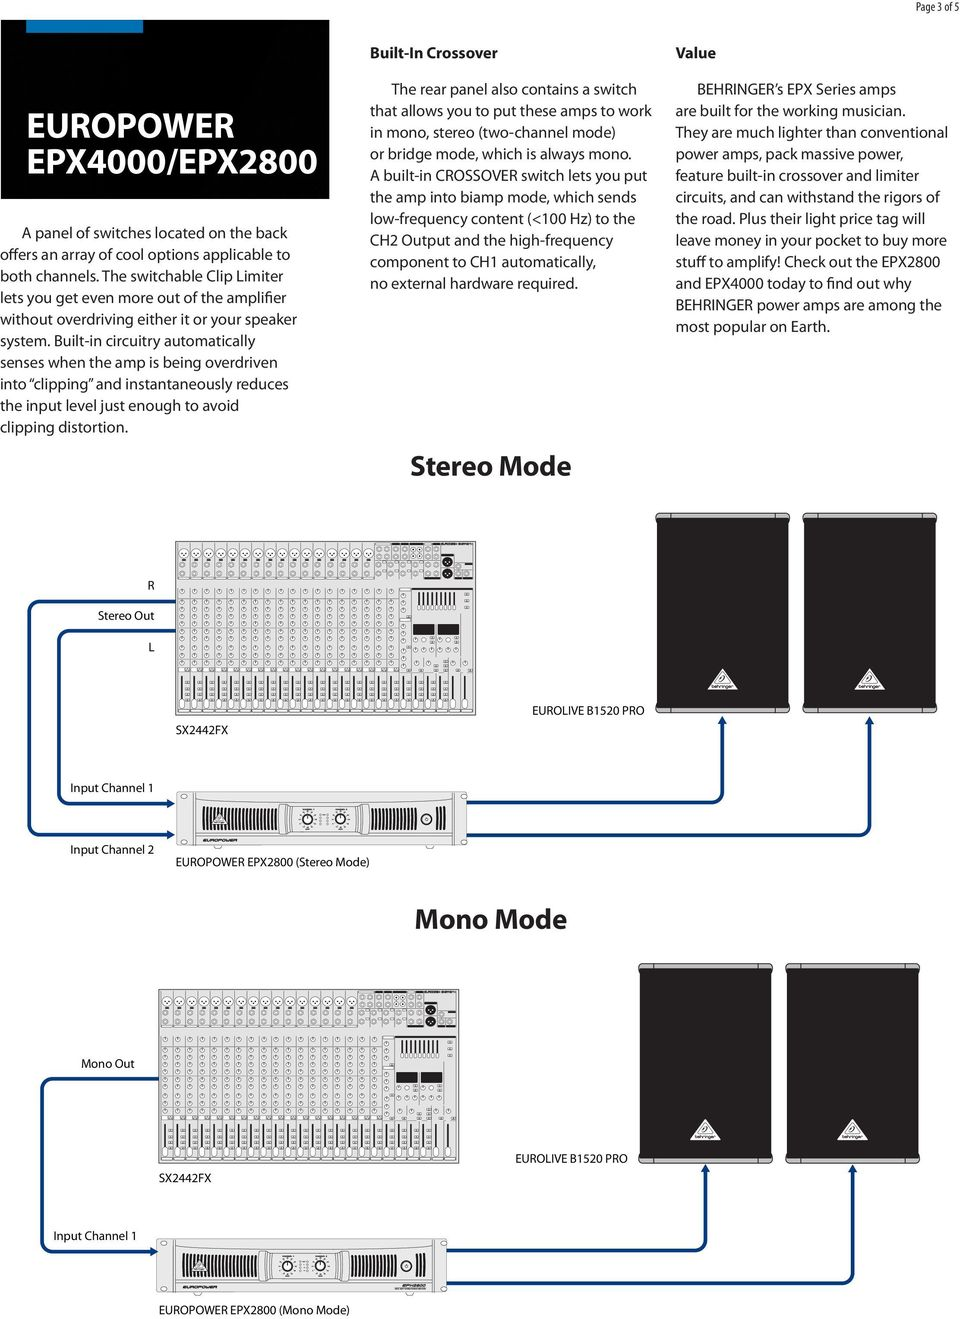 Europower Epx4000 Epx Pdf Behringer Crossover Wiring Diagram Built In Circuitry Automatically Senses When The Amp Is Being Overdriven Into Clipping And Instantaneously